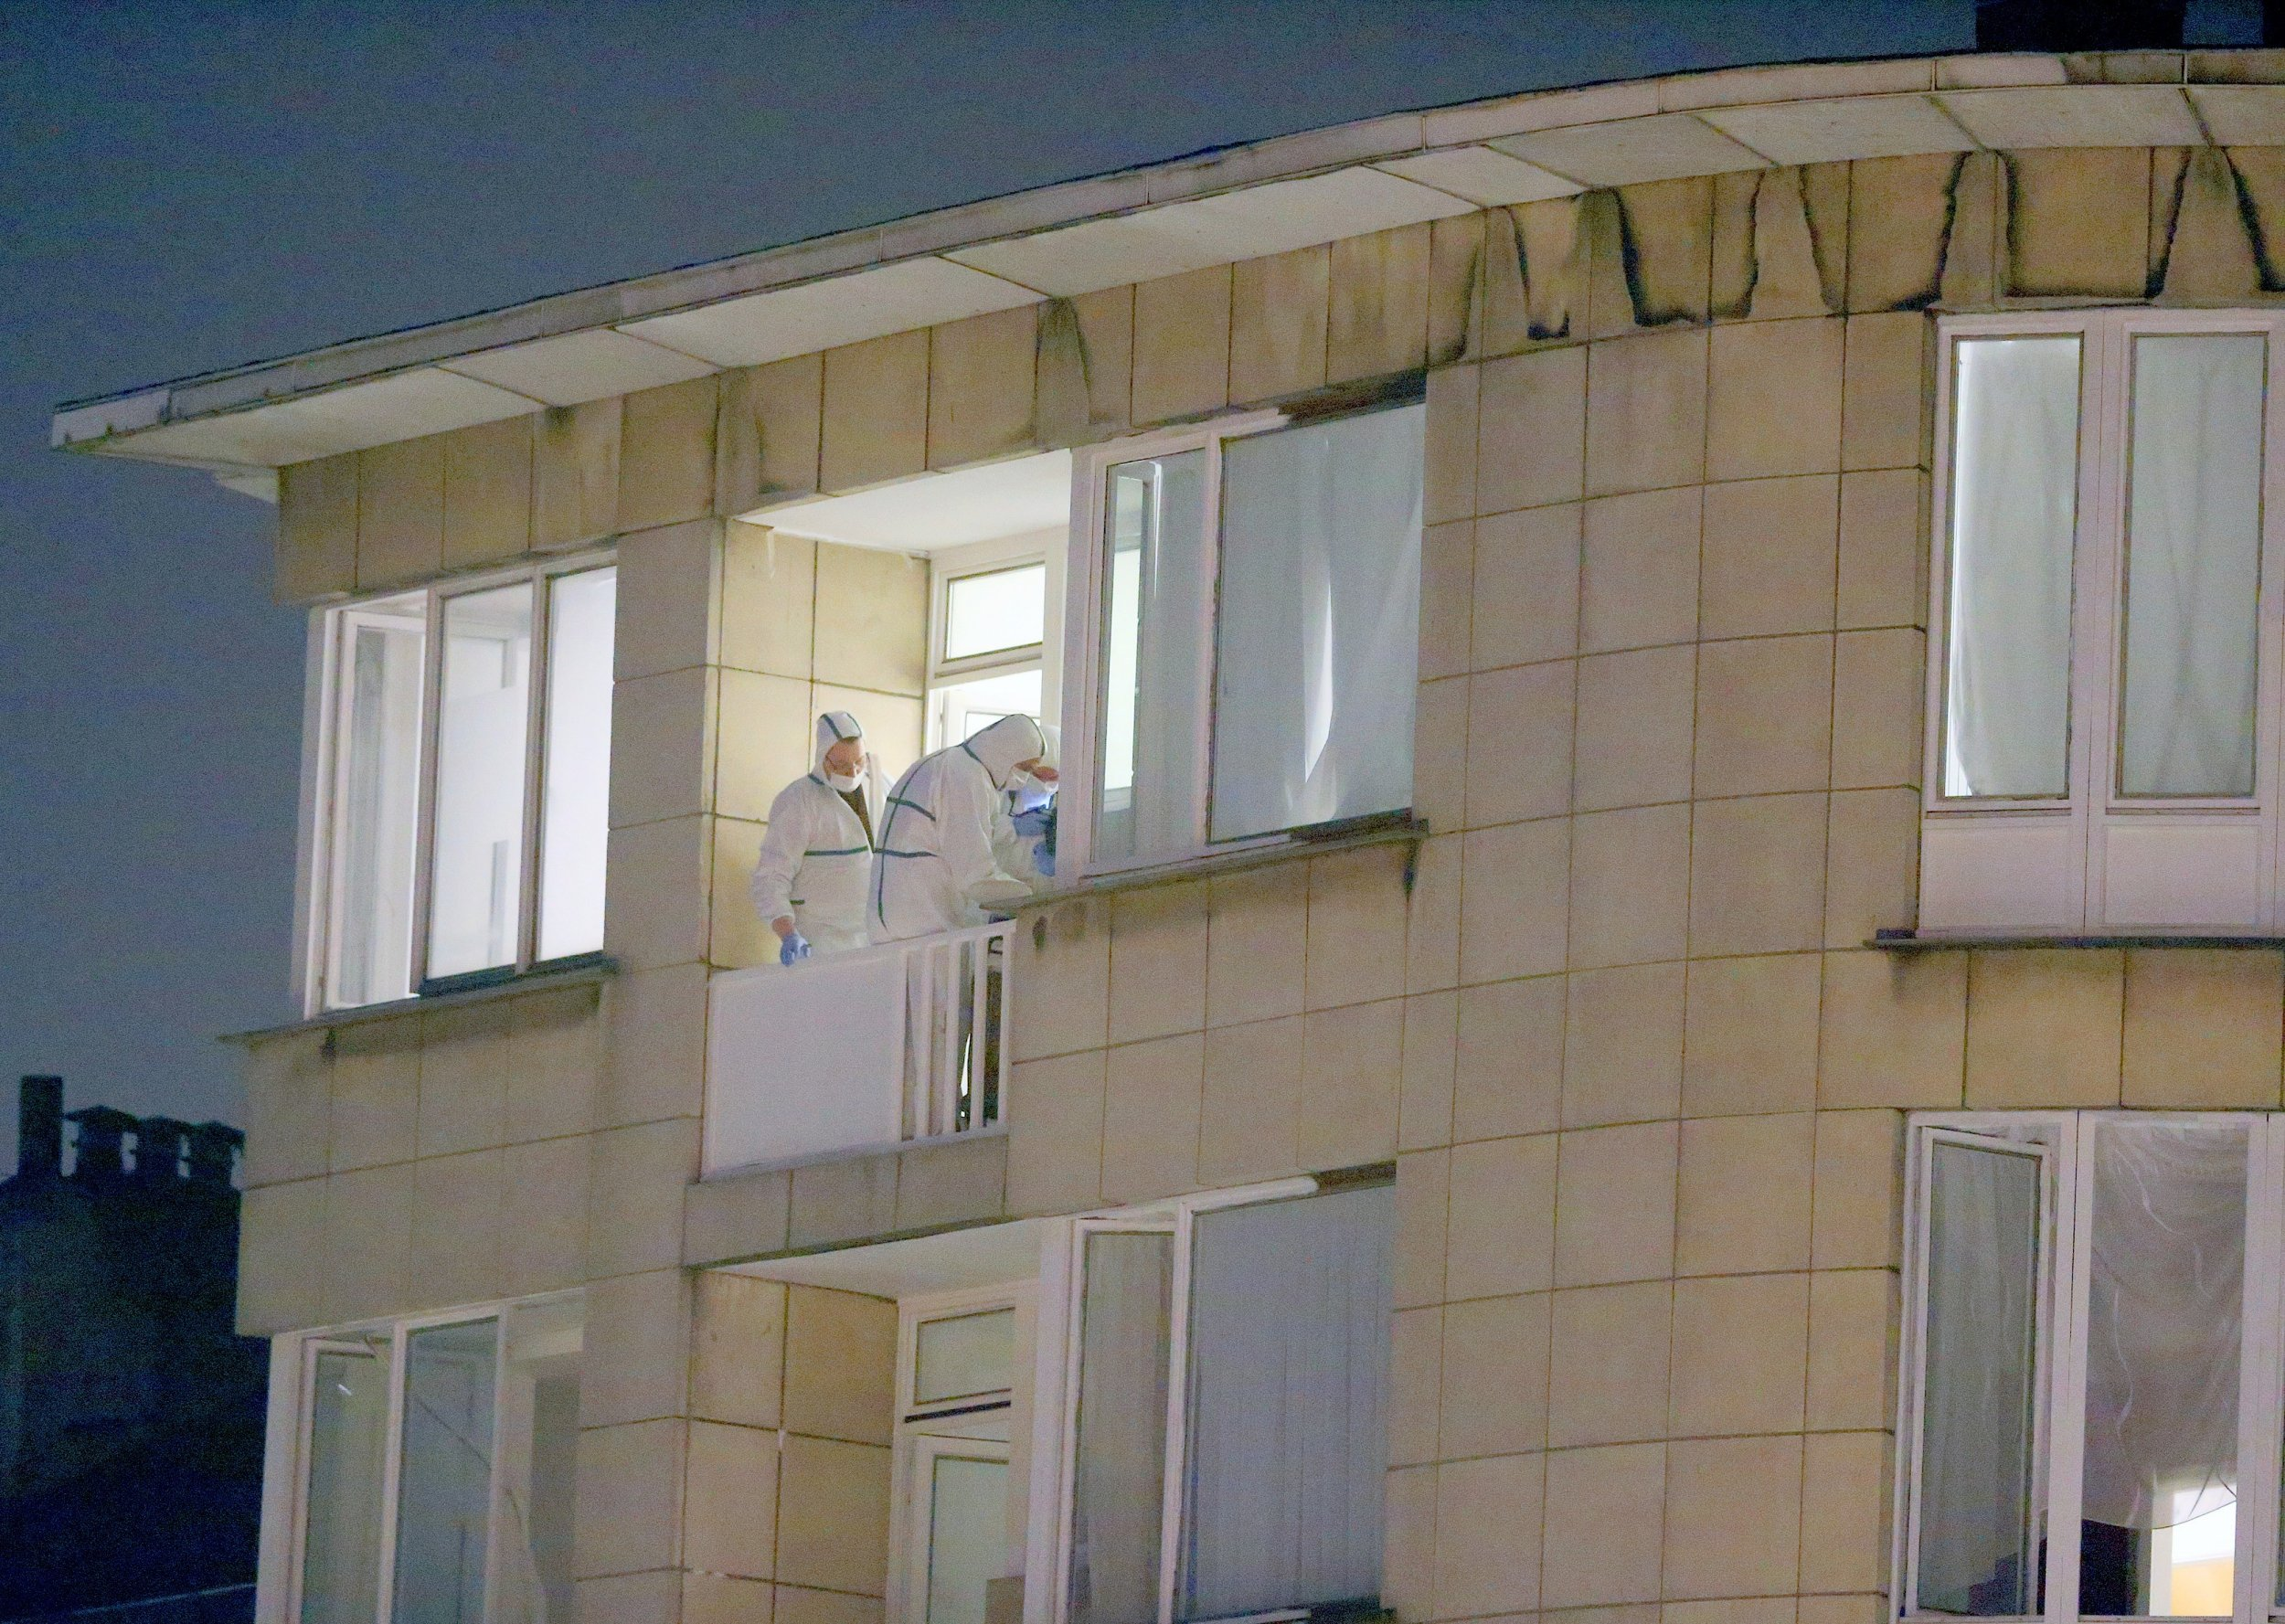 Brussels attacks: Police find Isis flag and chemicals in flat raid